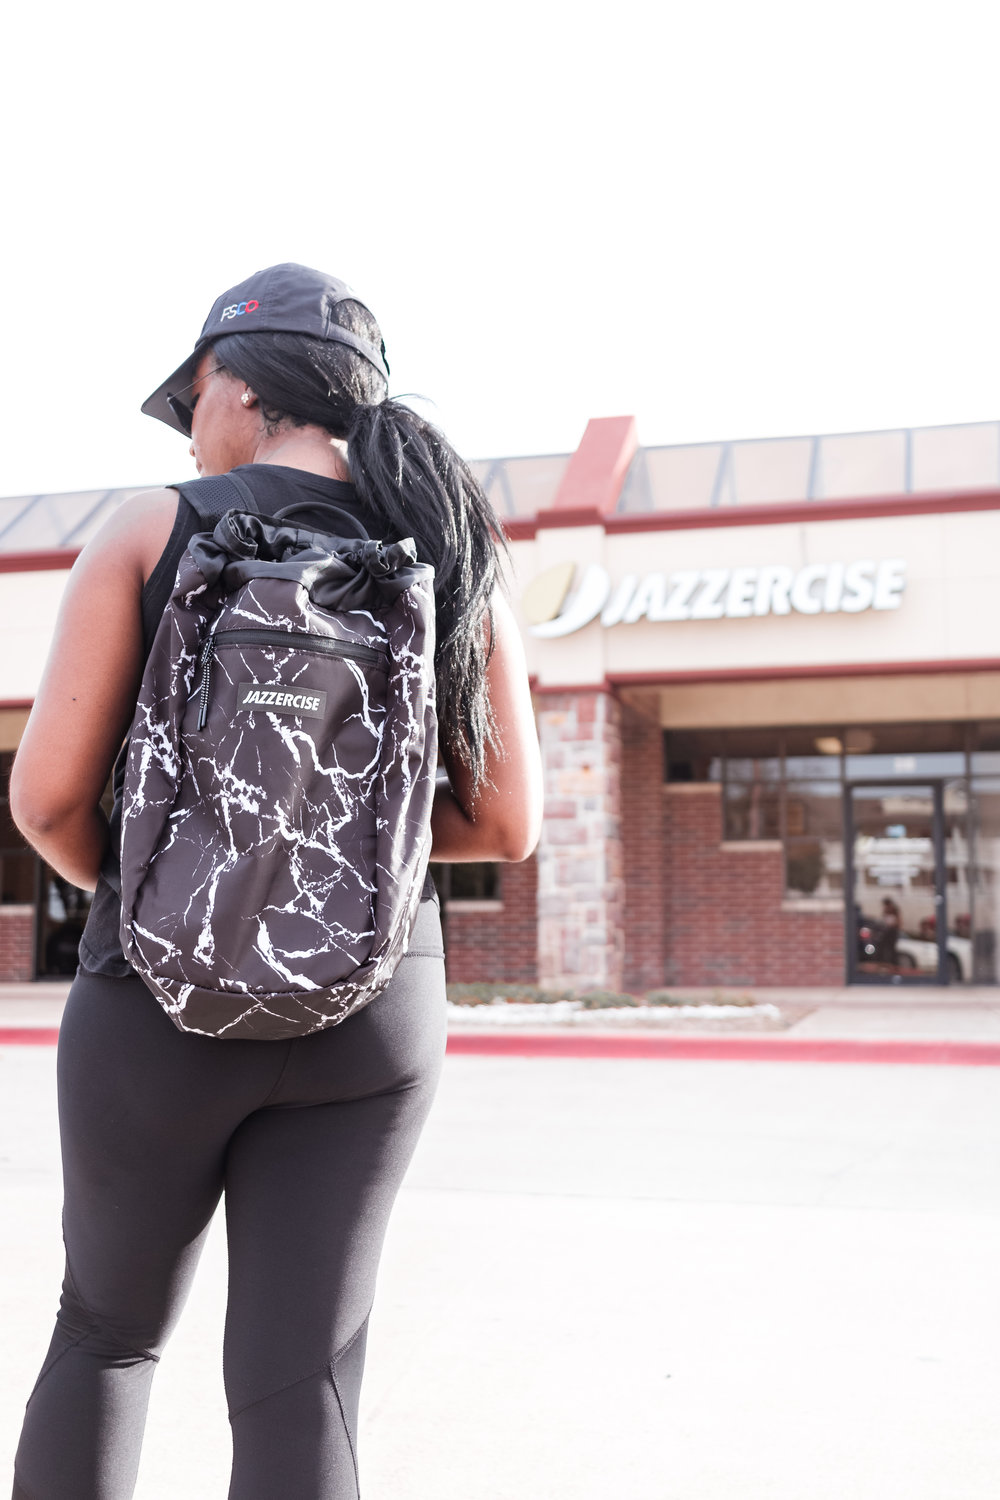 jazzercise-workout-plano-fitness-studio-review.jpg